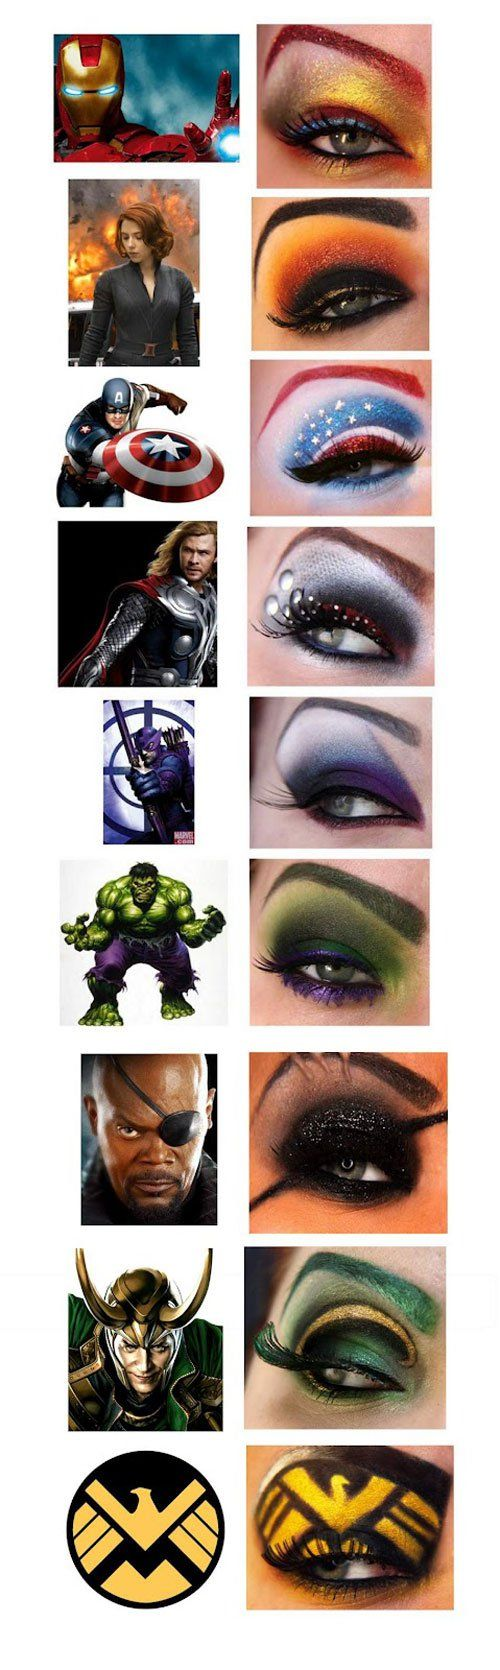 Avenger Eye Makeup  I wouldn't do it but its cool for halloween for people.